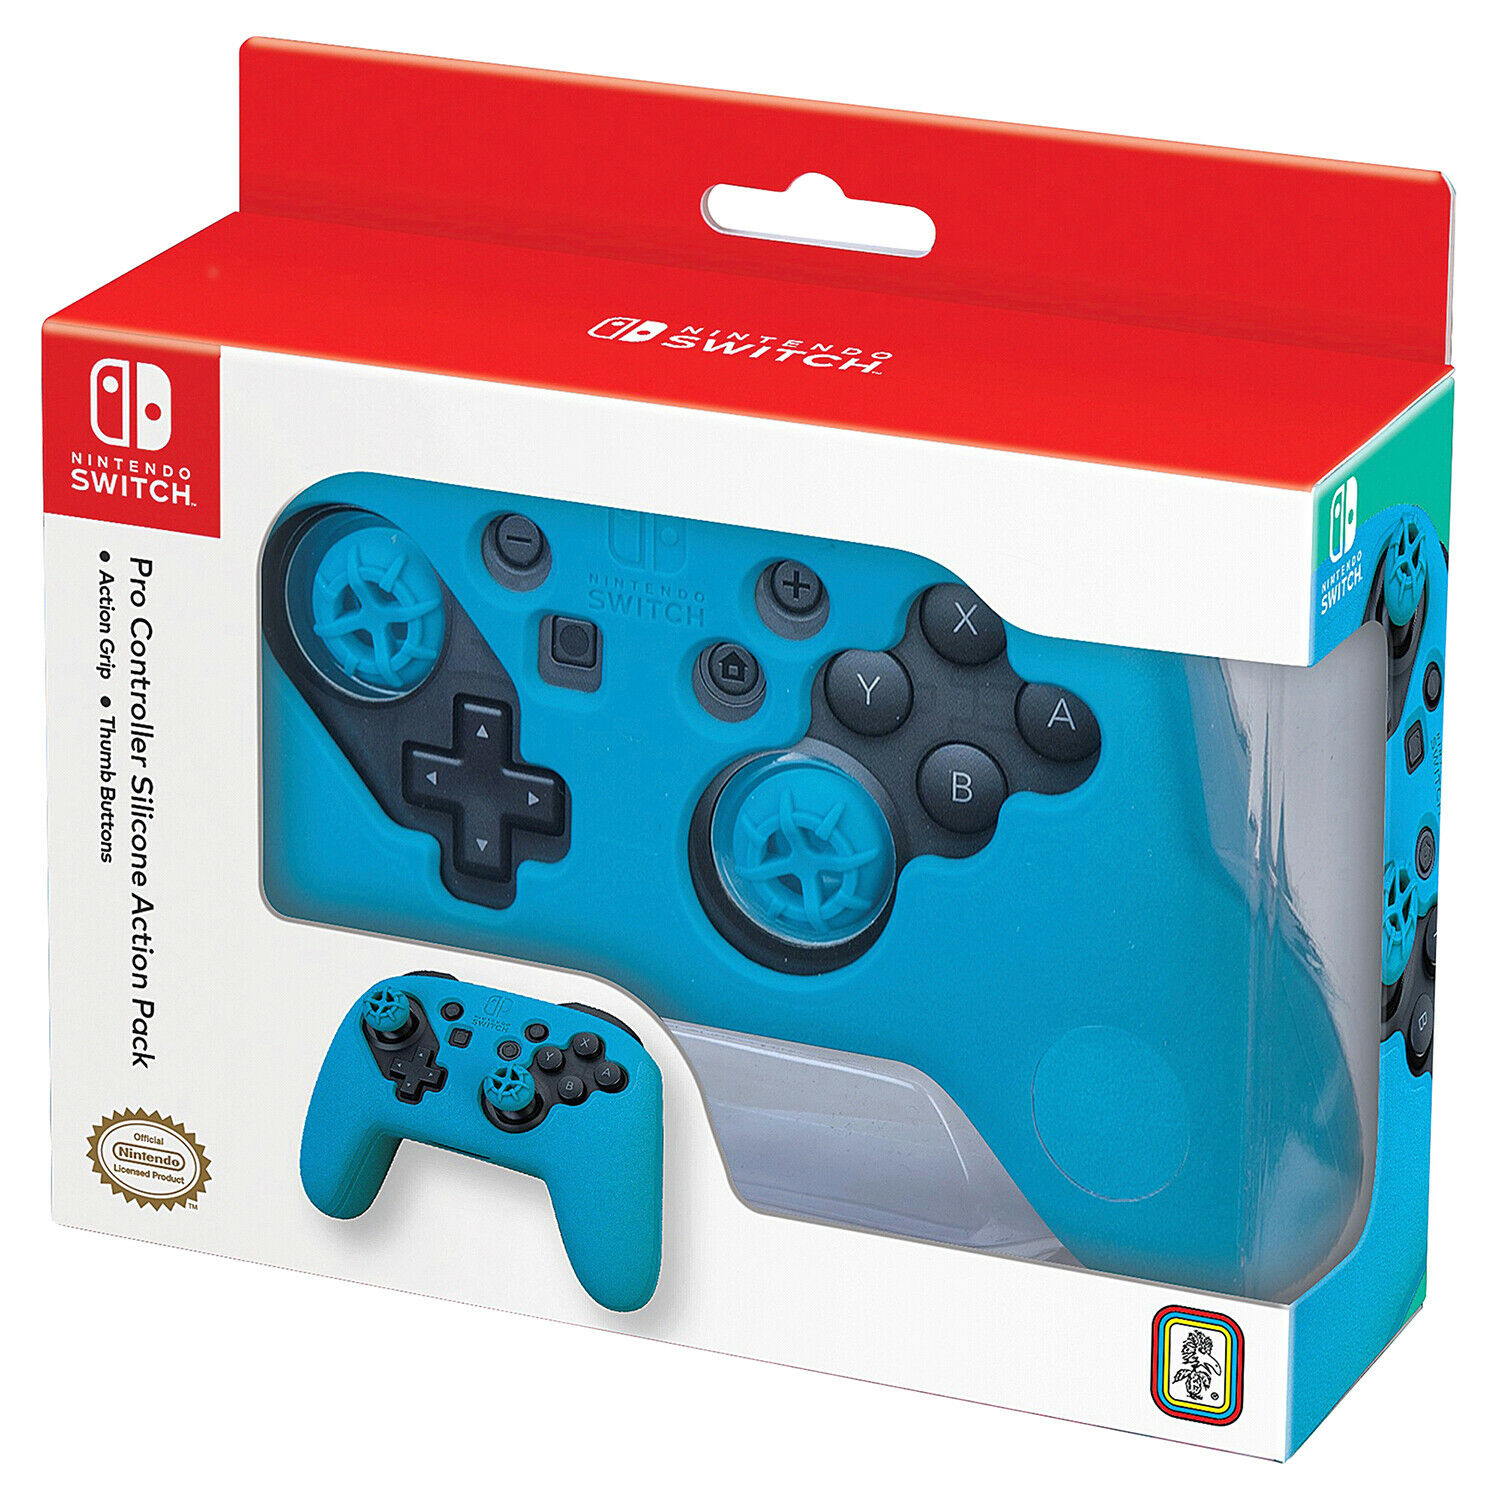 Nintendo Switch Pro Controller Silicone Action Pack Skin Cover Grey Nns6 For Sale Online Ebay